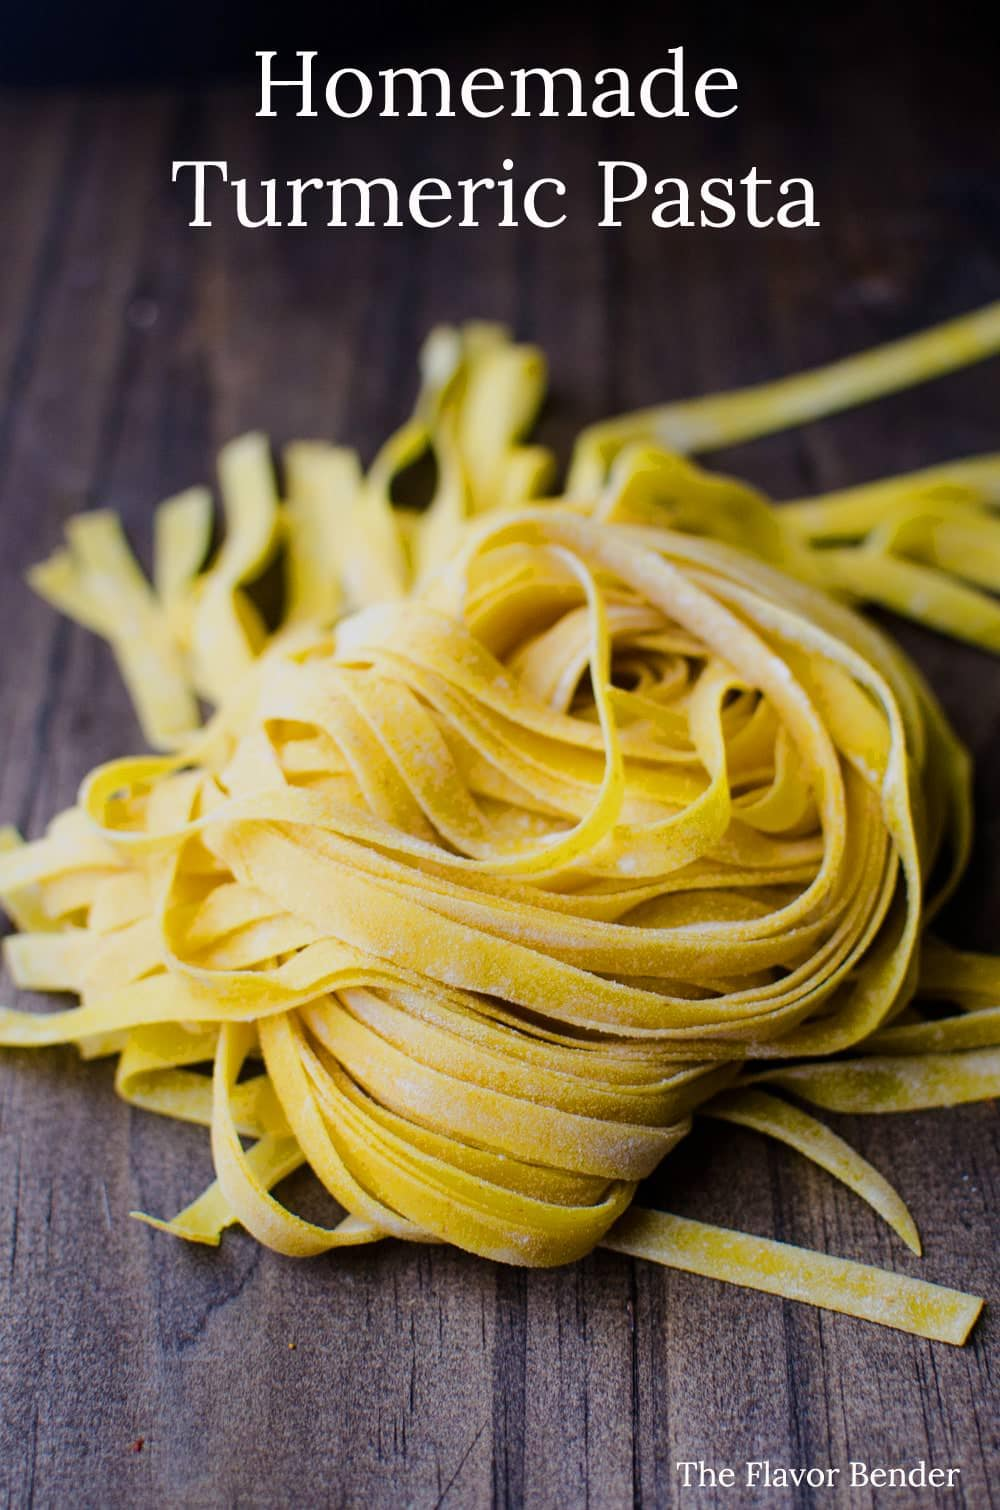 Homemade Turmeric Pasta - Bright yellow, smoky turmeric infused into homemade pasta dough. Fun to make and gives your pasta a delicious smoky flavor with a pleasant, slight bitterness.